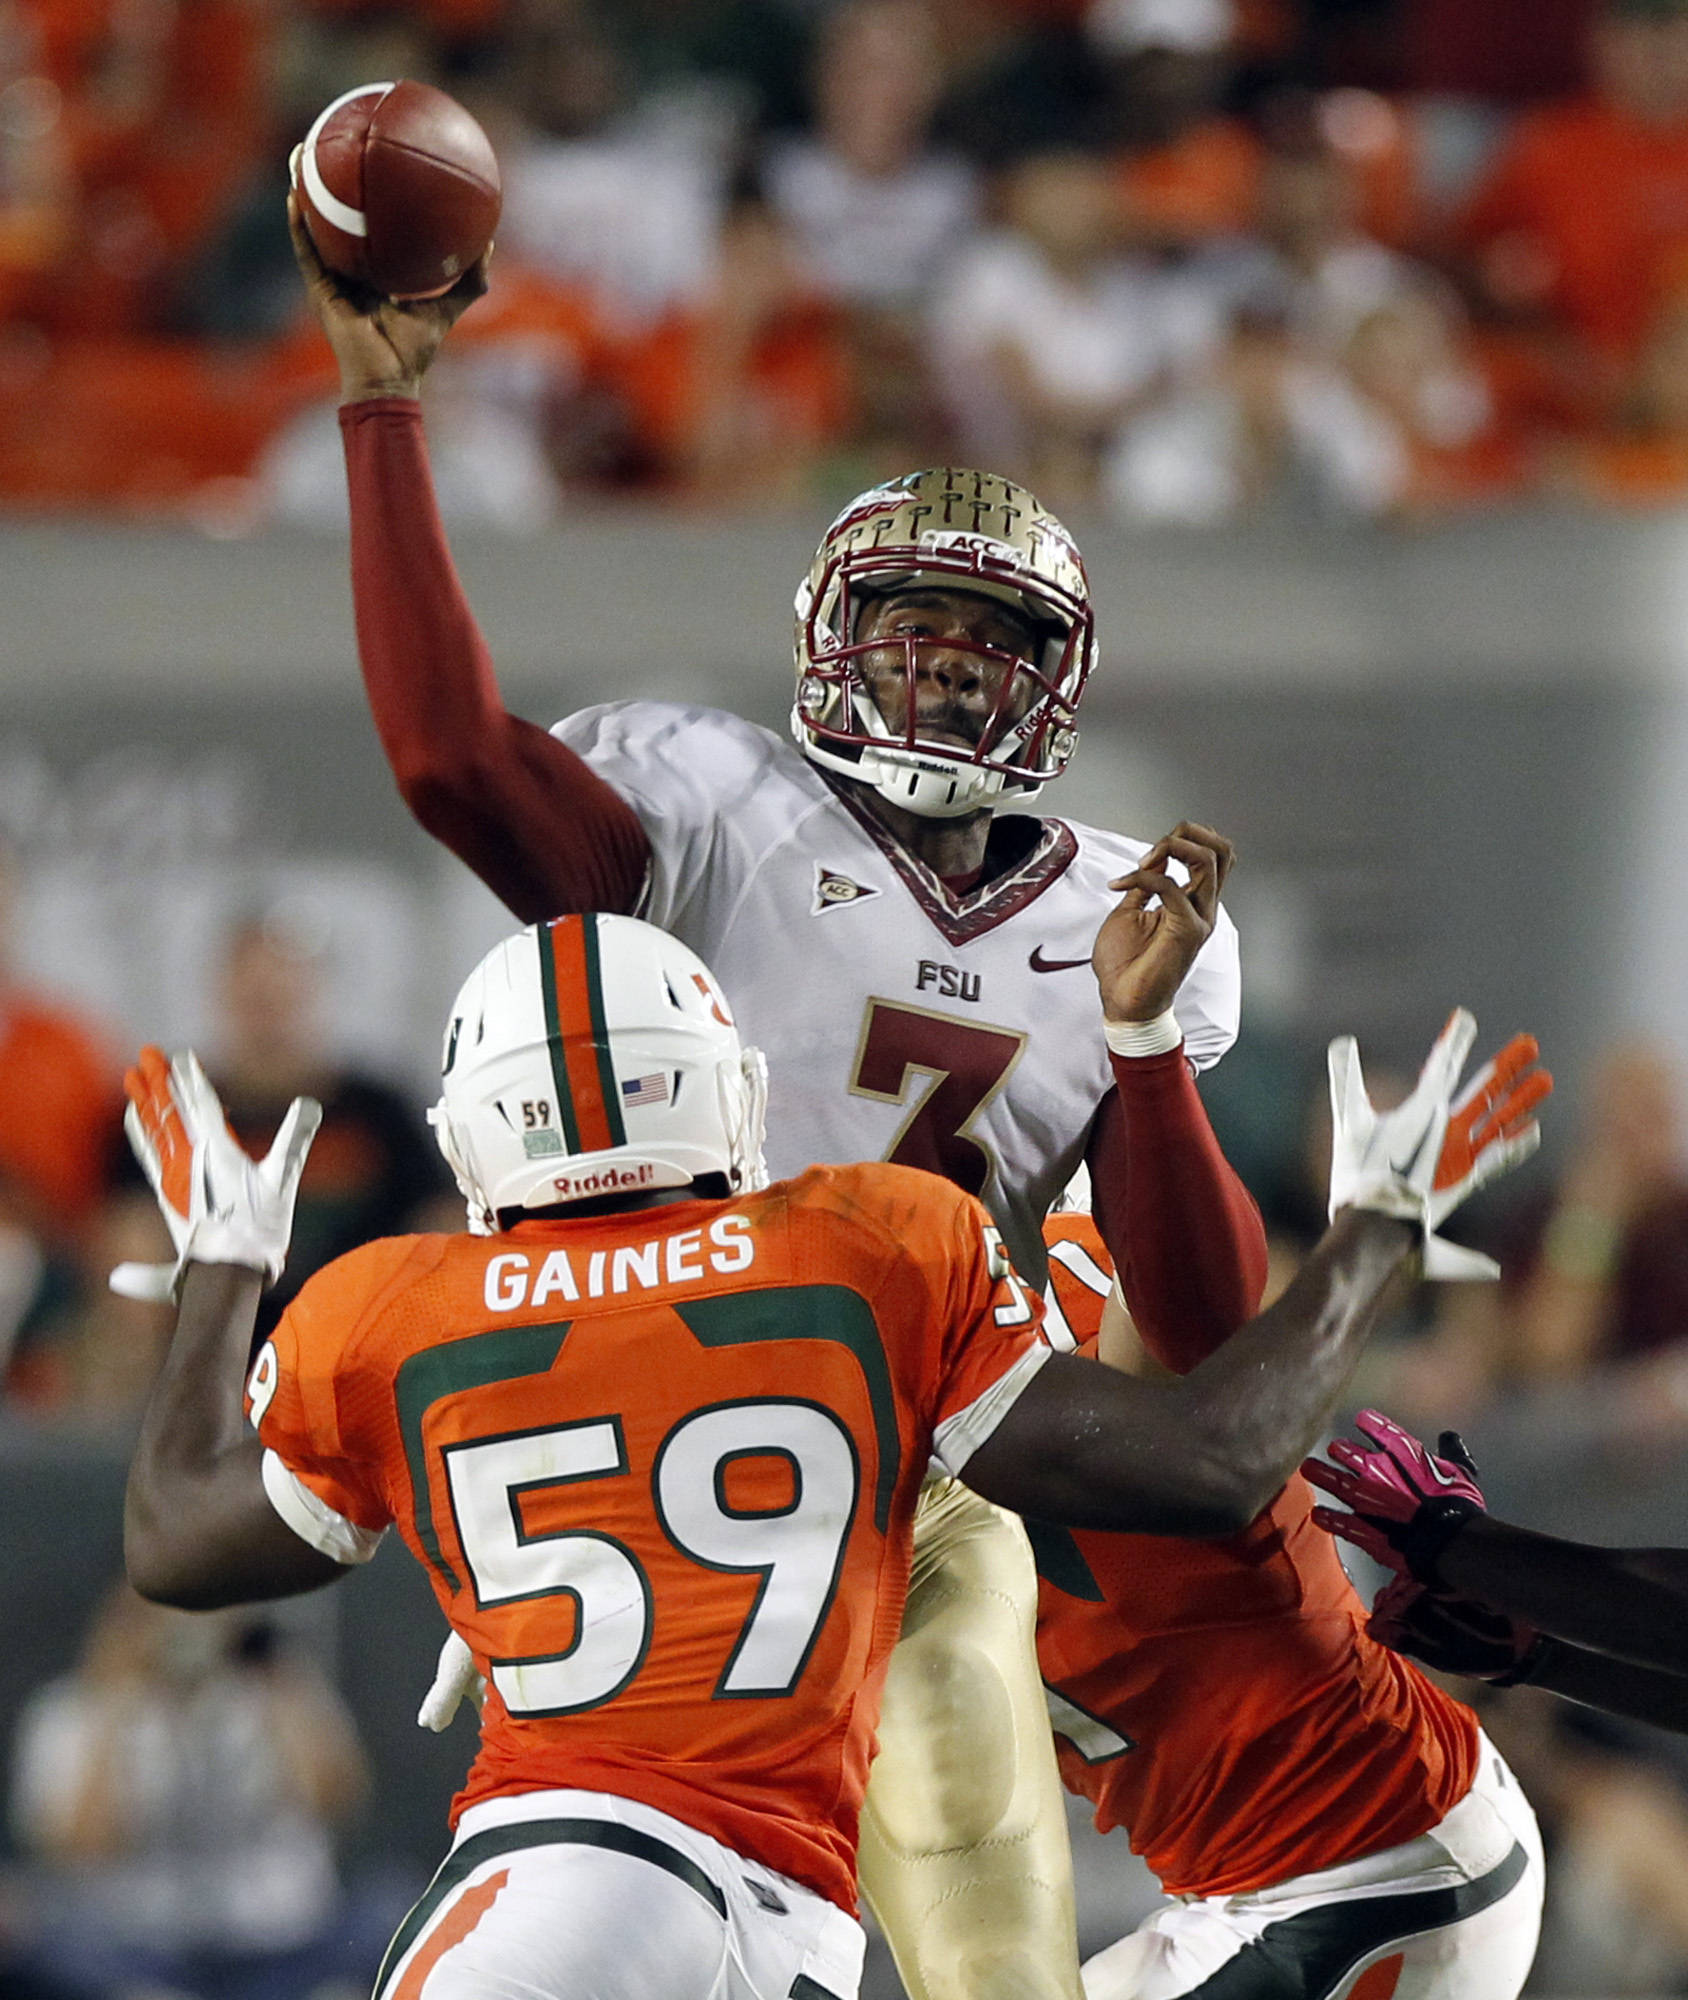 Florida State quarterback EJ Manuel (3) passes over Miami's Jimmy Gaines (59) during the first half of an NCAA college football game in Miami, Saturday, Oct. 20, 2012. (AP Photo/Alan Diaz)